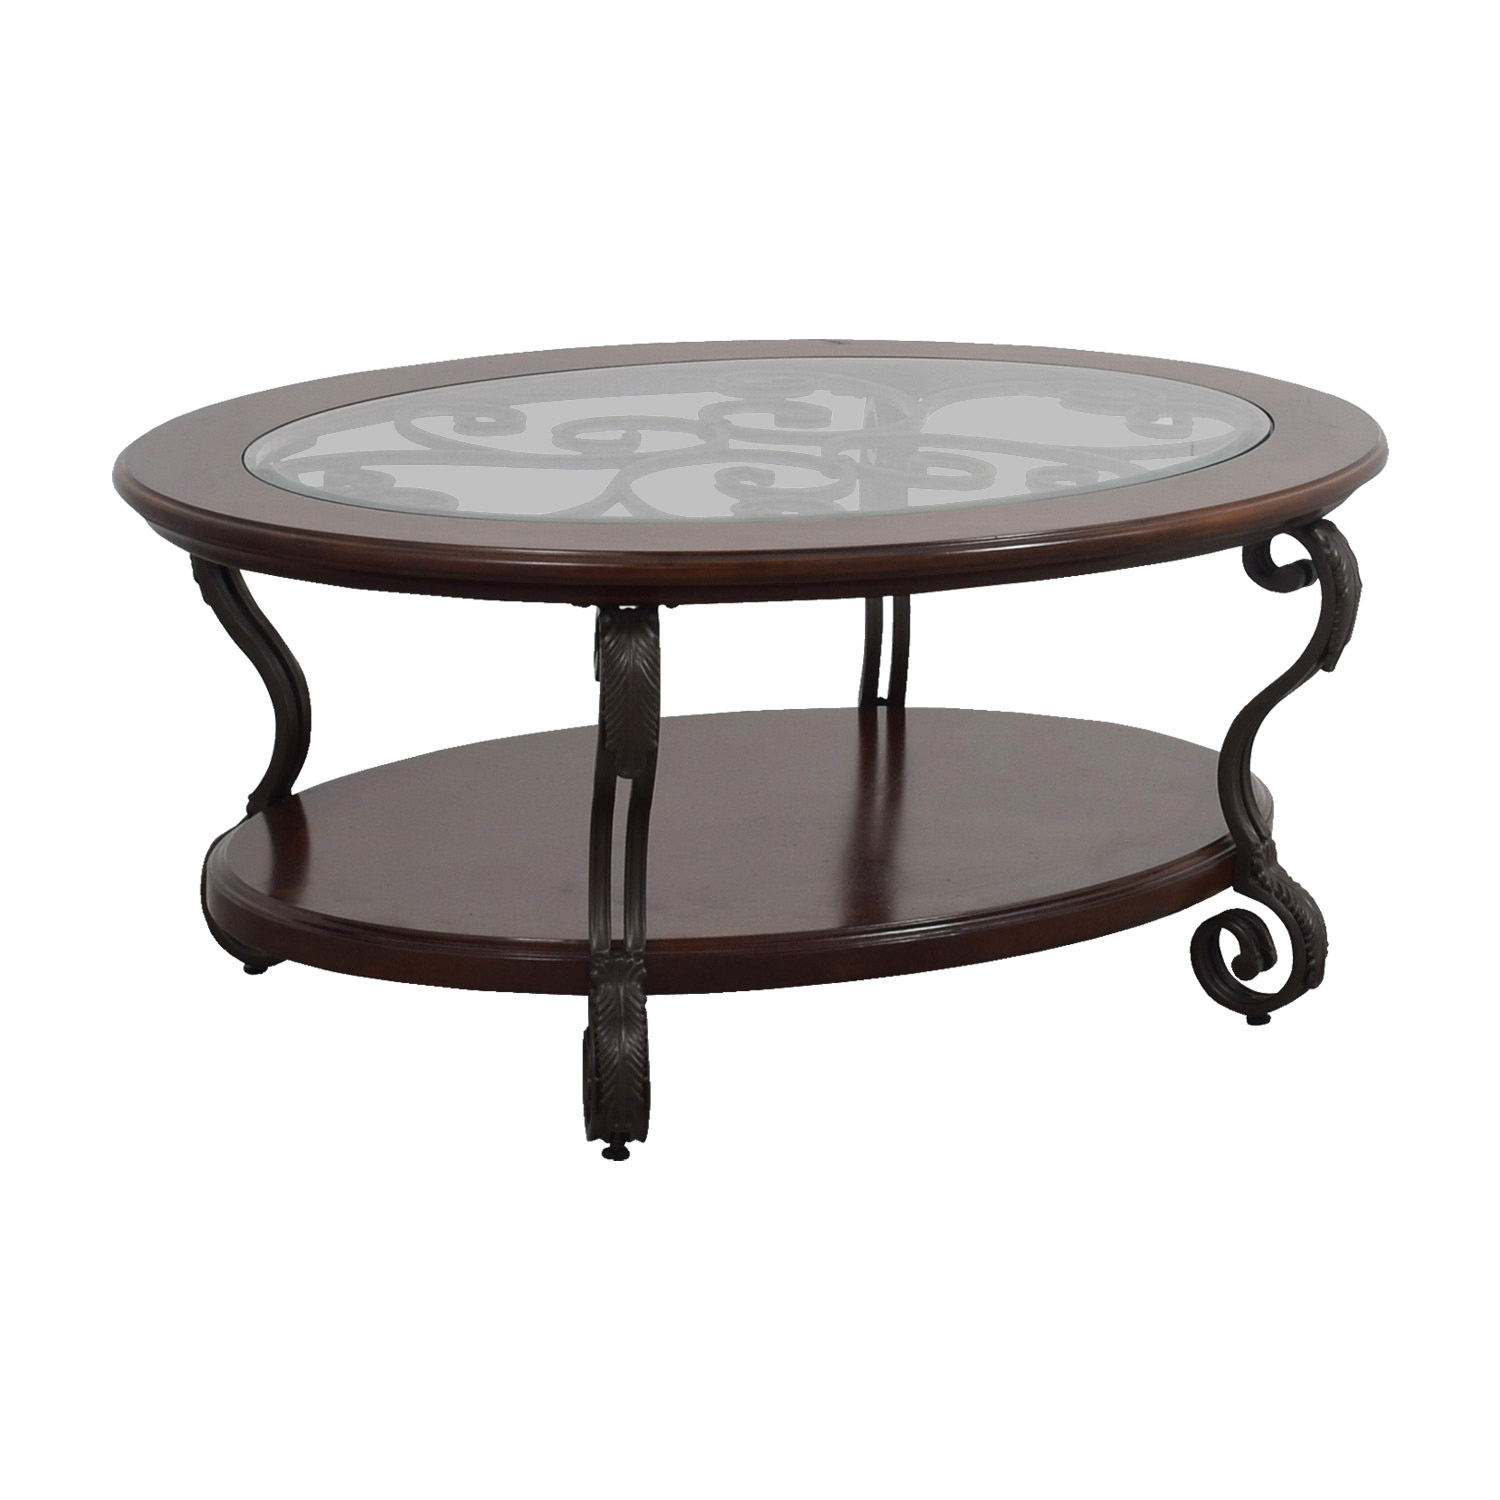 Ordinaire ... Ashley Furniture Oval Glass Wood And Metal Scroll Coffee Table Ashley  Furniture ...